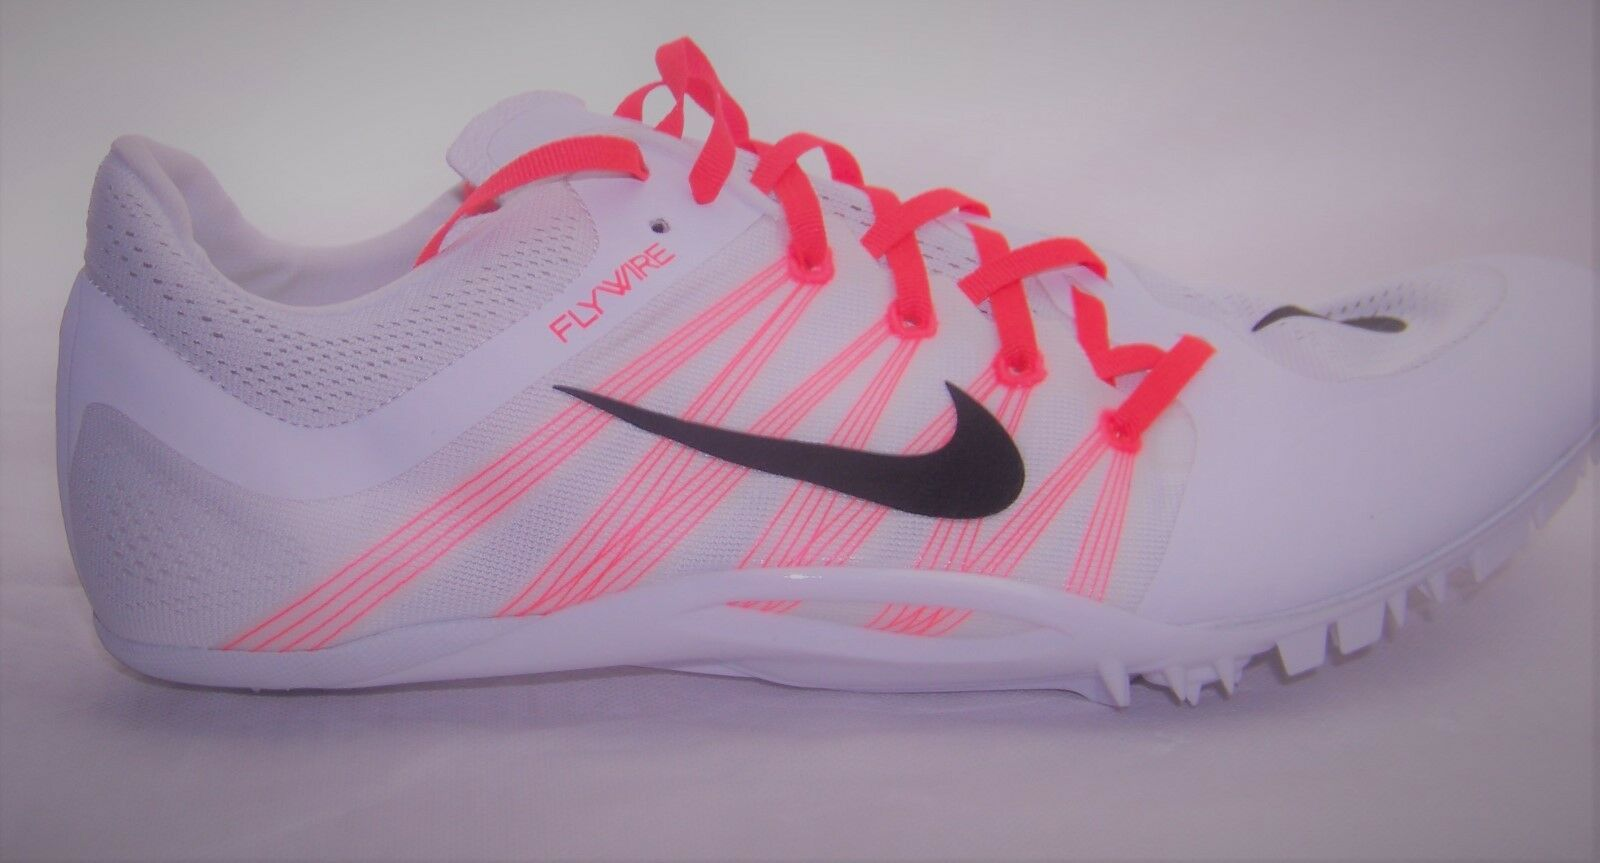 Mens Nike Zoom Ja Fly 705373 2 101 Track Spikes Size 14 Sprint Shoes White Field